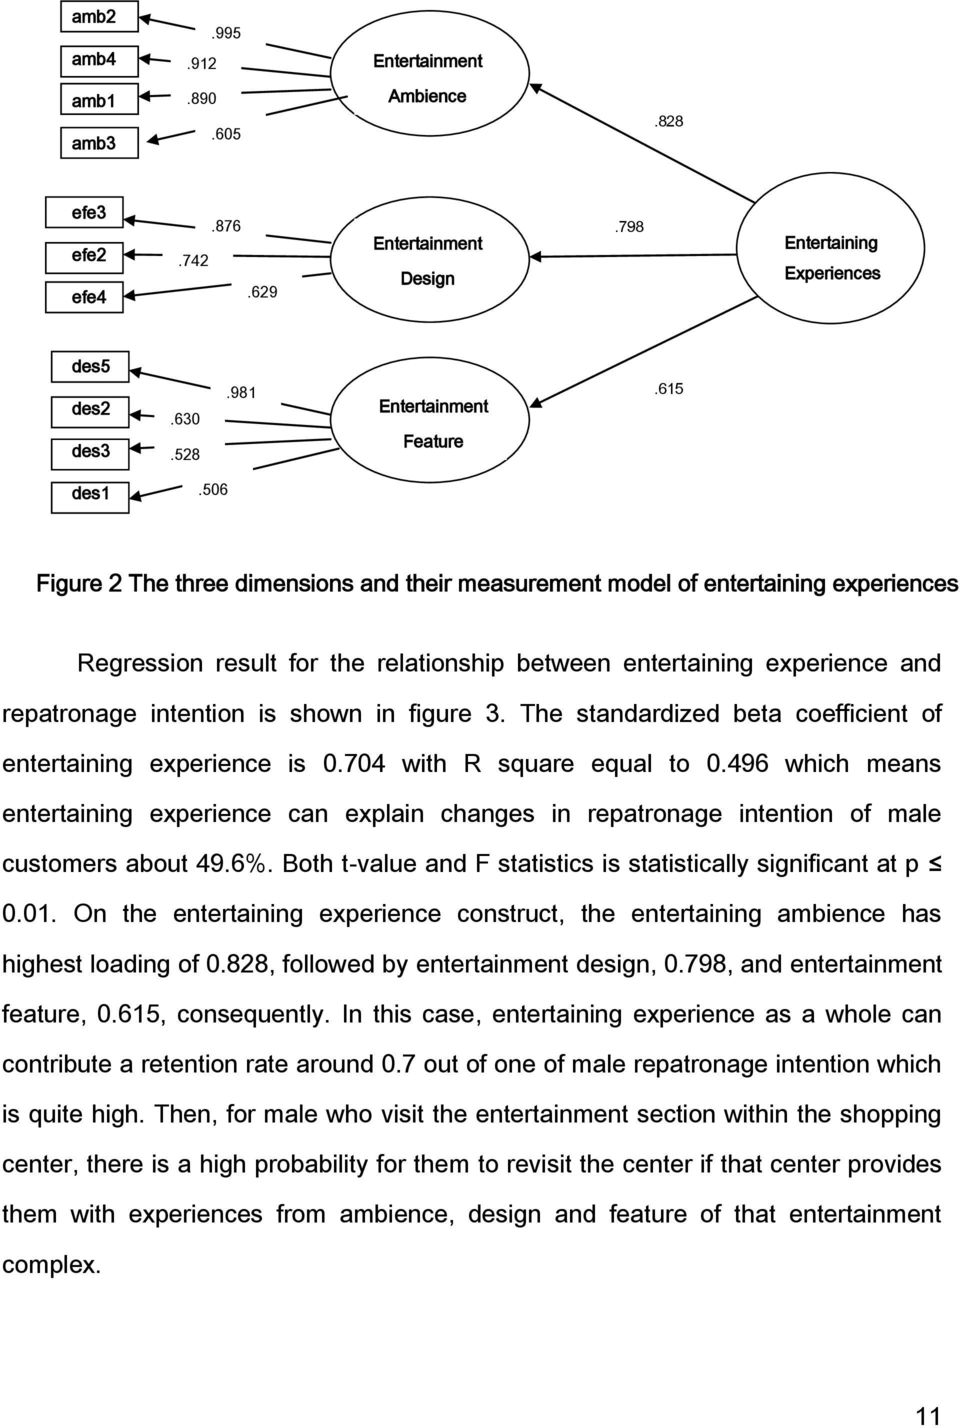 506 A Figure 2 The three dimensions and their measurement model of entertaining experiences Regression result for the relationship between entertaining experience and repatronage intention is shown